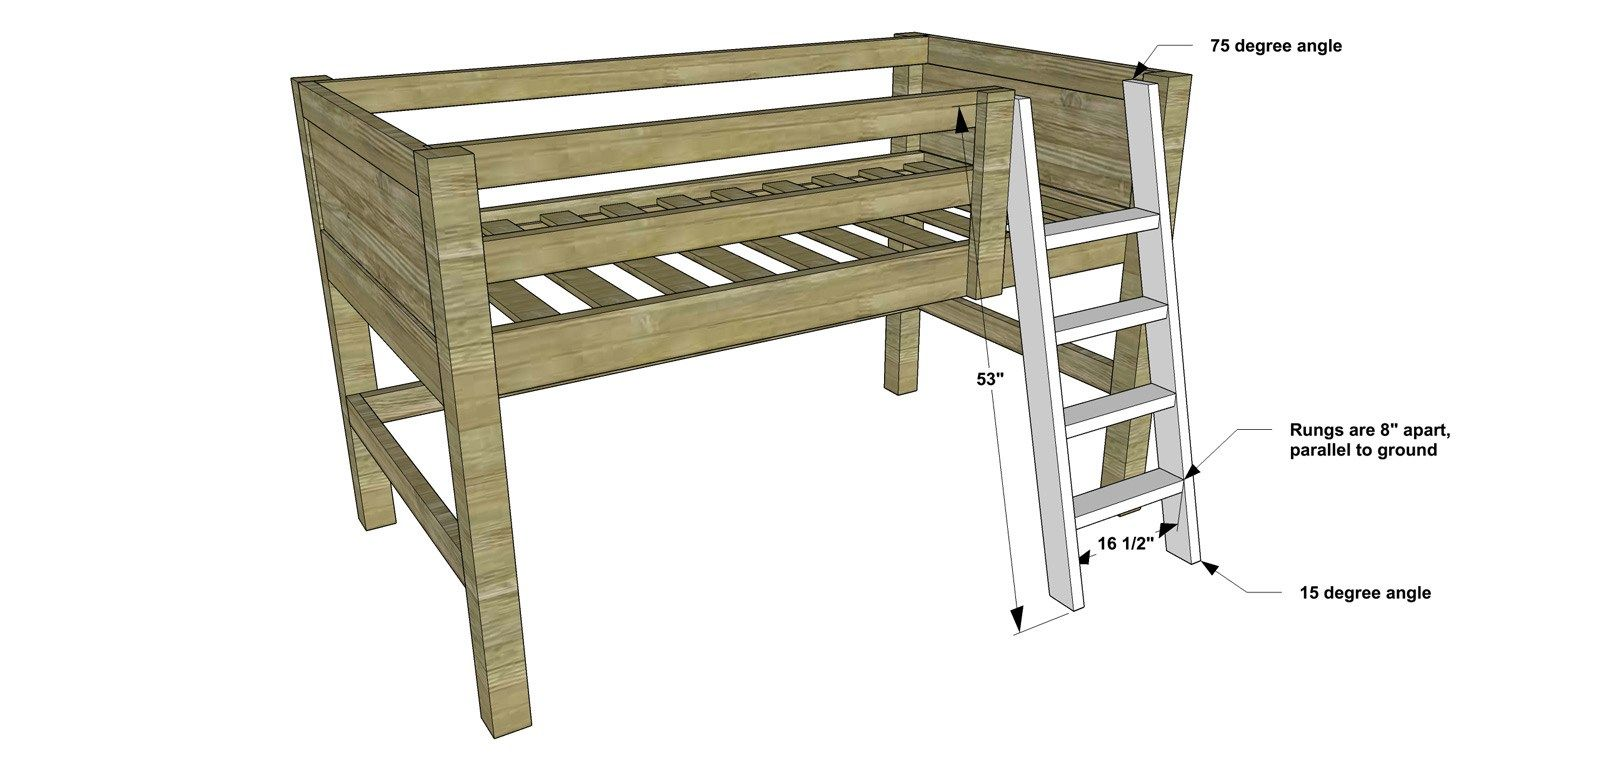 Free Diy Furniture Plans How To Build A Twin Sized Low Loft Bunk With Roll Out Desk Bookshelf The Design Confidential Diy Furniture Plans Diy Loft Bed Furniture Plans